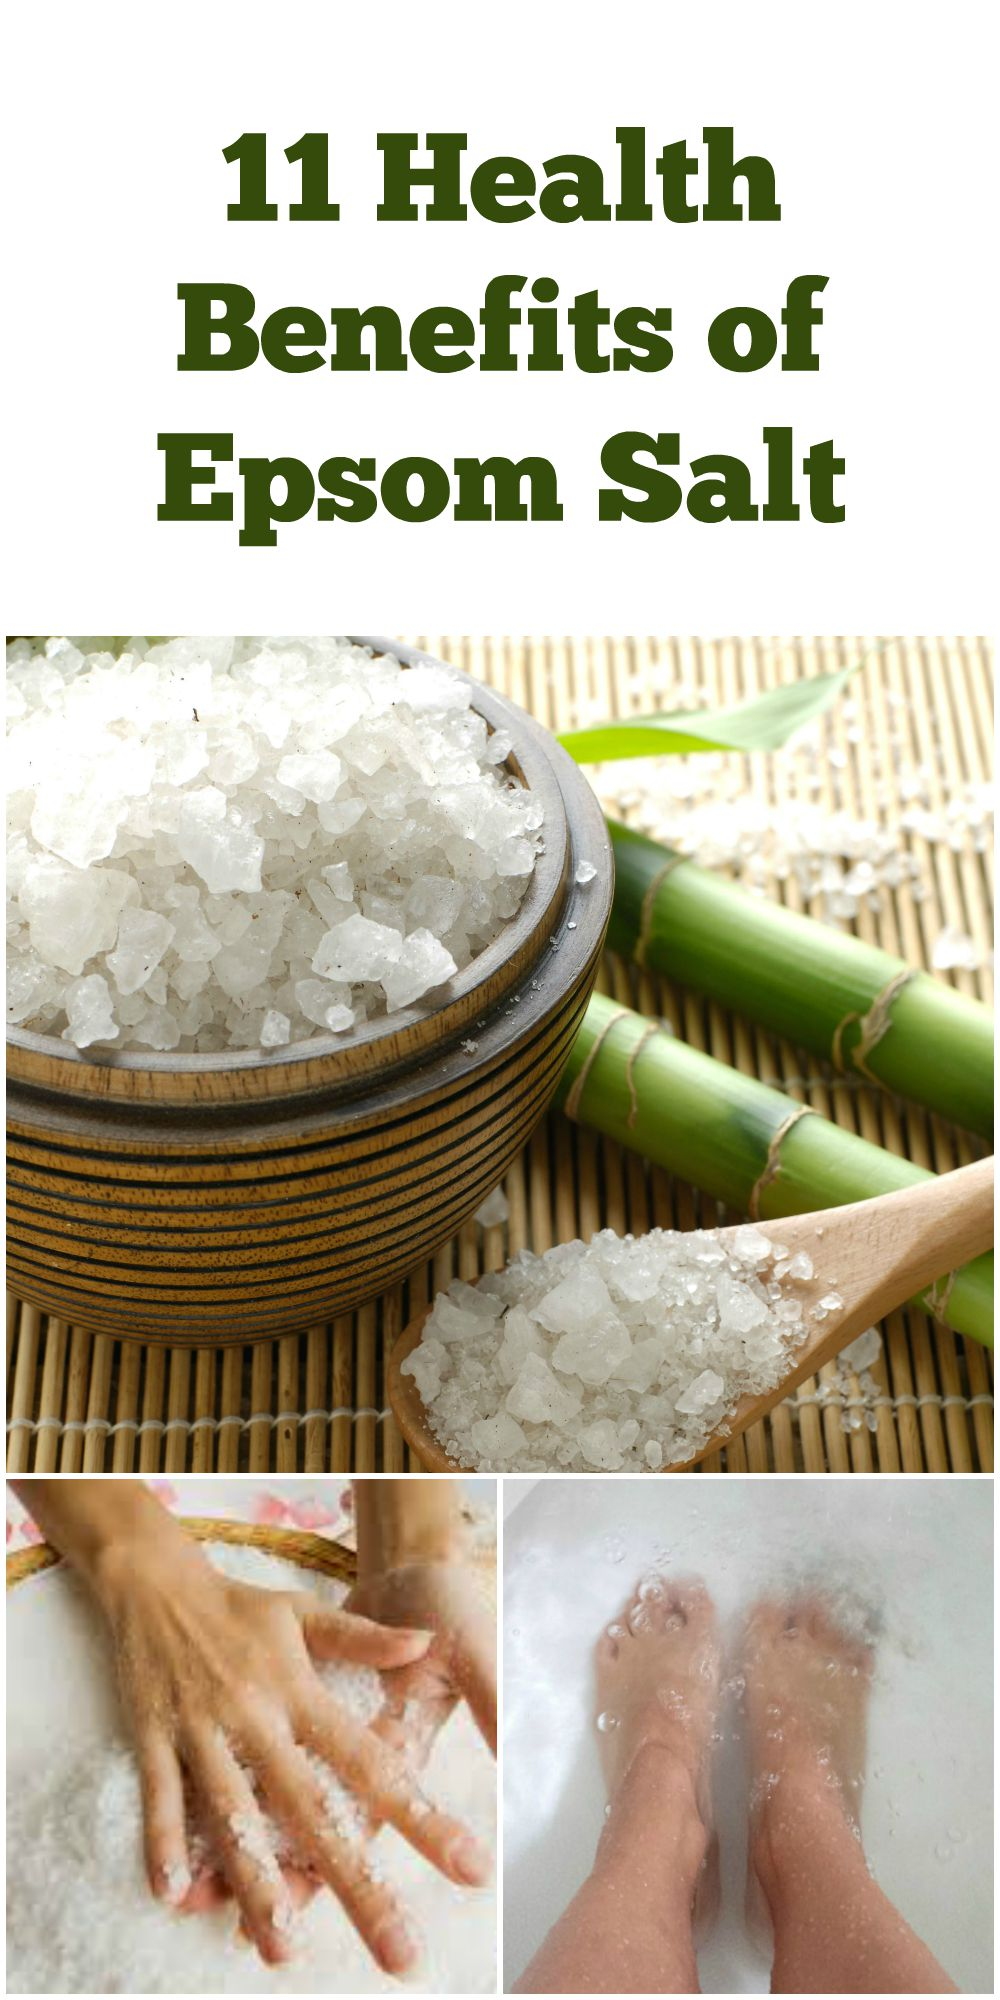 epsom-salt-benefits